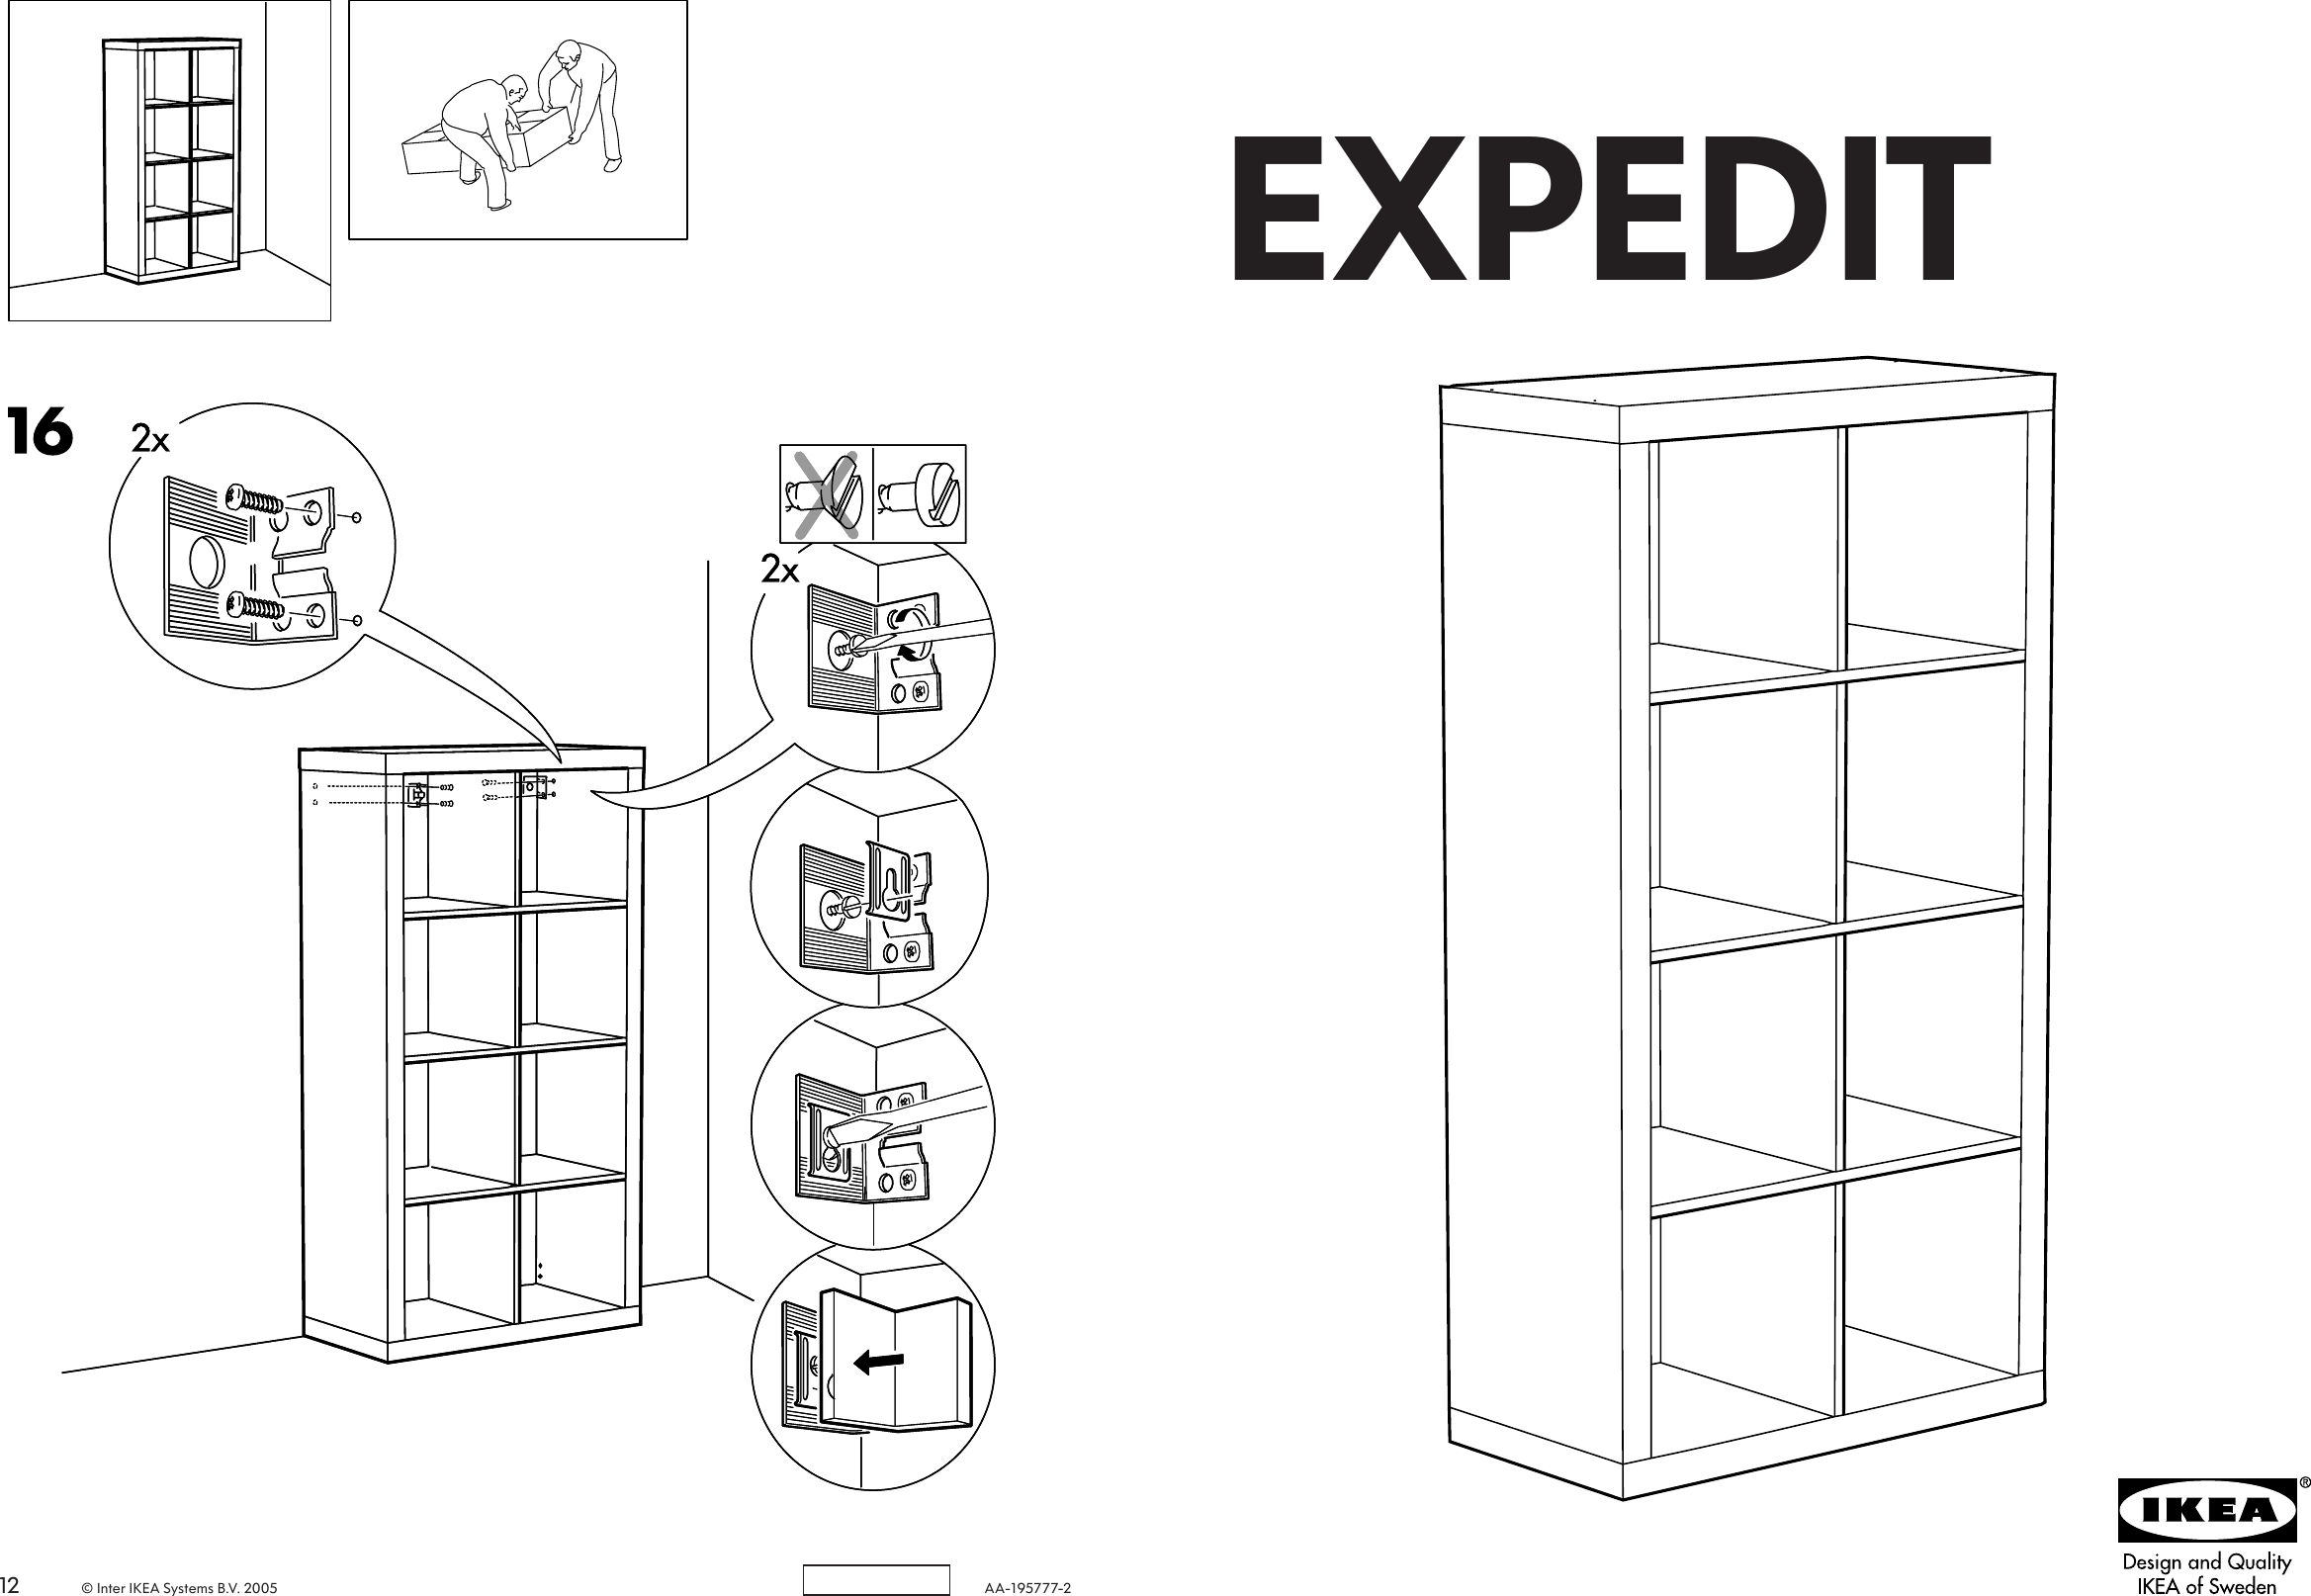 Ikea Expedit Bookcase 58 5 8X31 1 8 Assembly Instruction